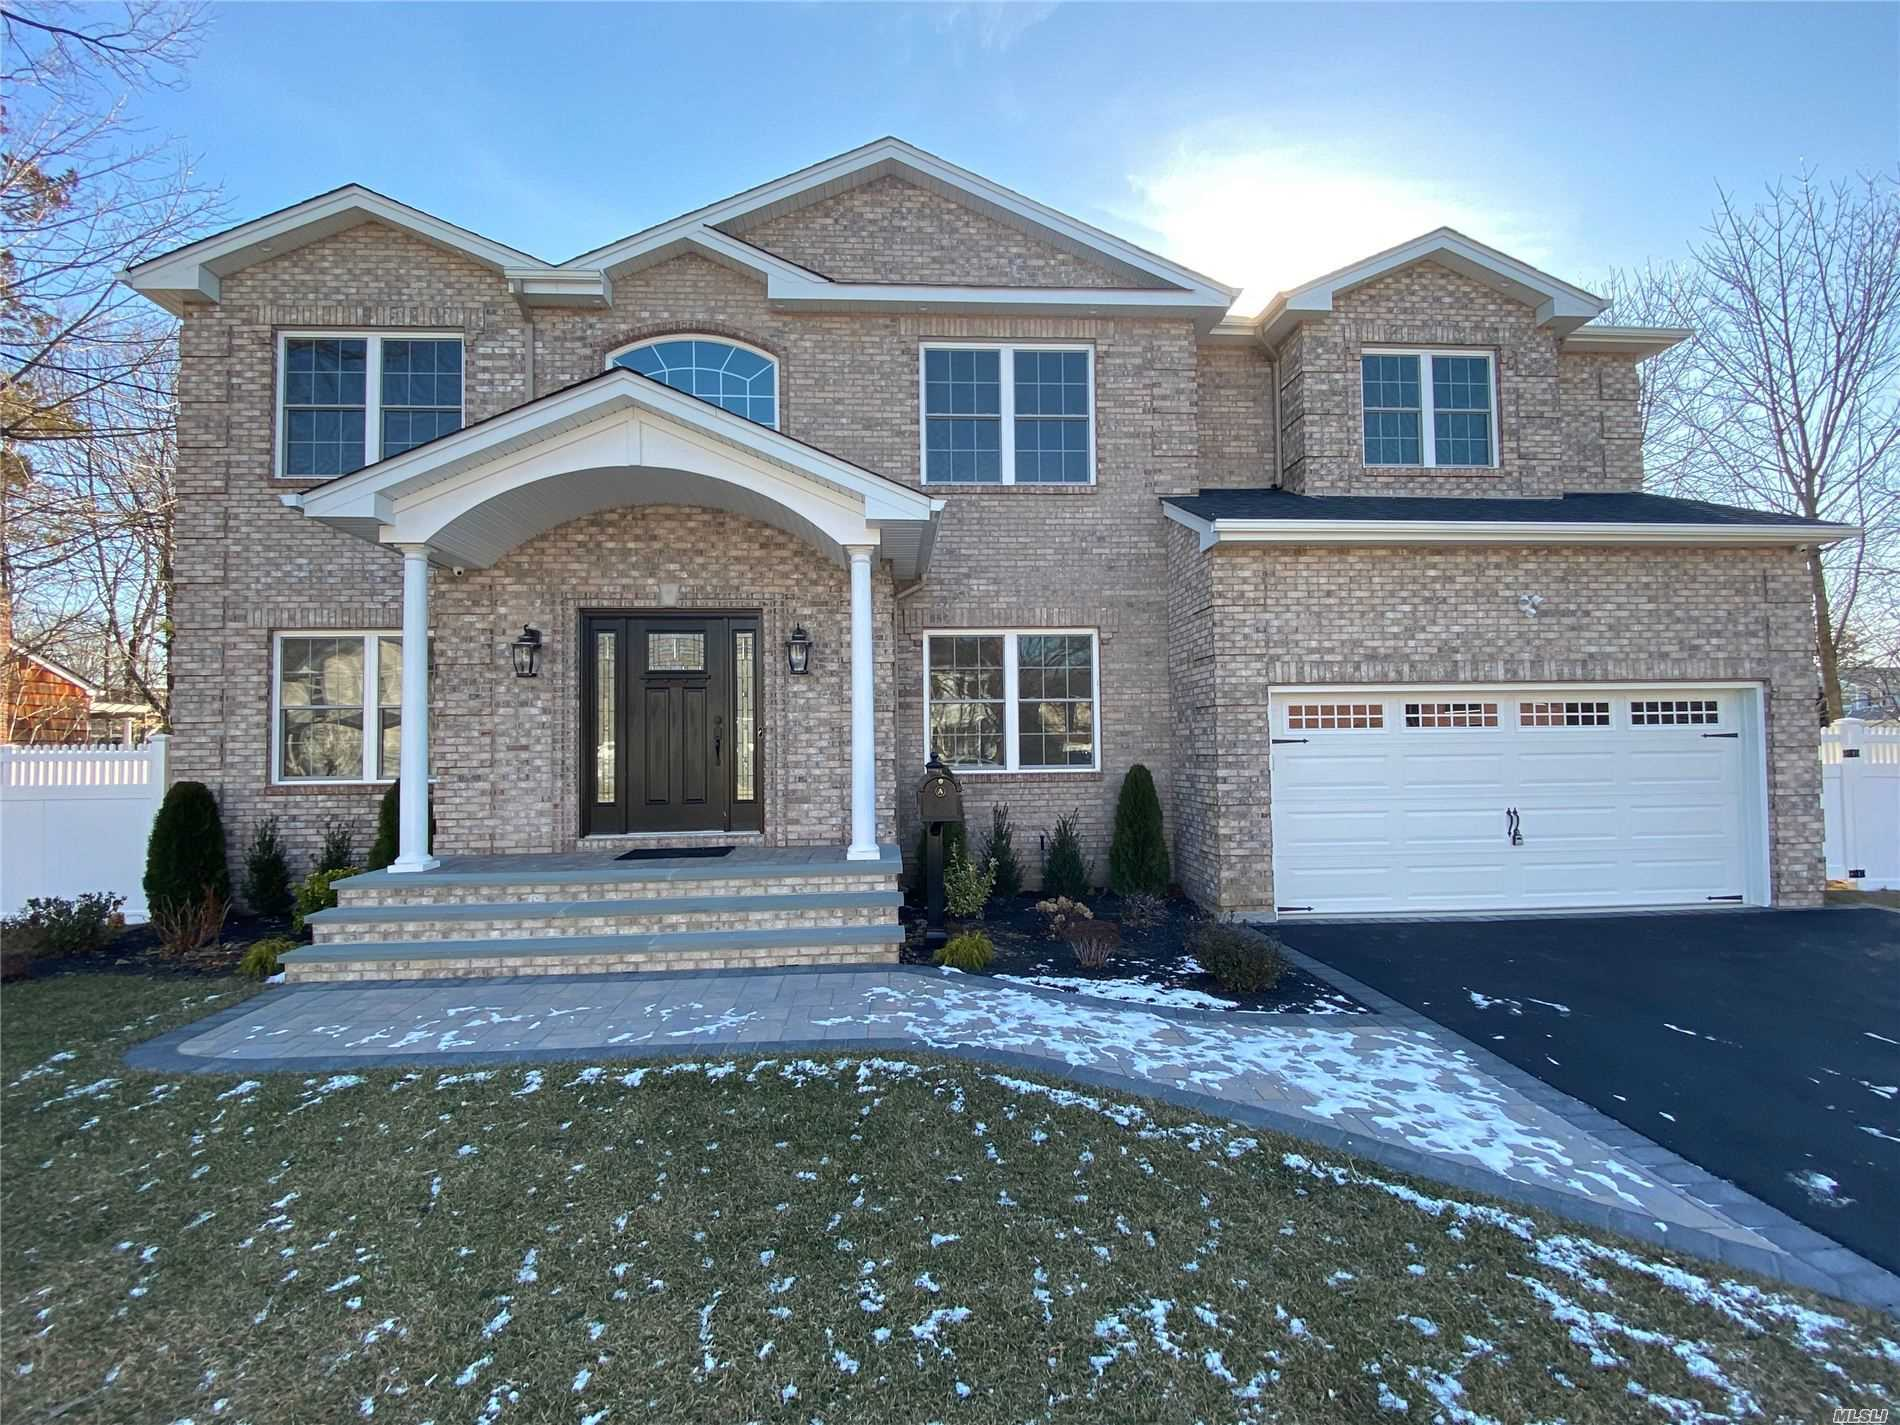 New Home JUST STARTING TO-BE-BUILT In Heart Of Wantagh Woods--Photos Are Of Same Model Home By Same Reputable Bldr (30+yrs). Just Over 3600 Int SqFt Of Open Flr Plan Designed To Perfection & To-Be-Finished W/Utmost Quality Of Construction. Huge Bsmt, Designer Baths, Eat-In-Kitchen W/Top-Of-Line SS Appls, Walk-In Pantry, Pella Wdws, Flawless Trim-Work/Details Throughout, 1st Flr Jr Suite/Office W/Own Private F-Bath (+Add'l H-Bath/Powder Rm On 1st Flr), Mstr Ste W/Giant WIC & Fbath+Jcuzzii, & MORE!